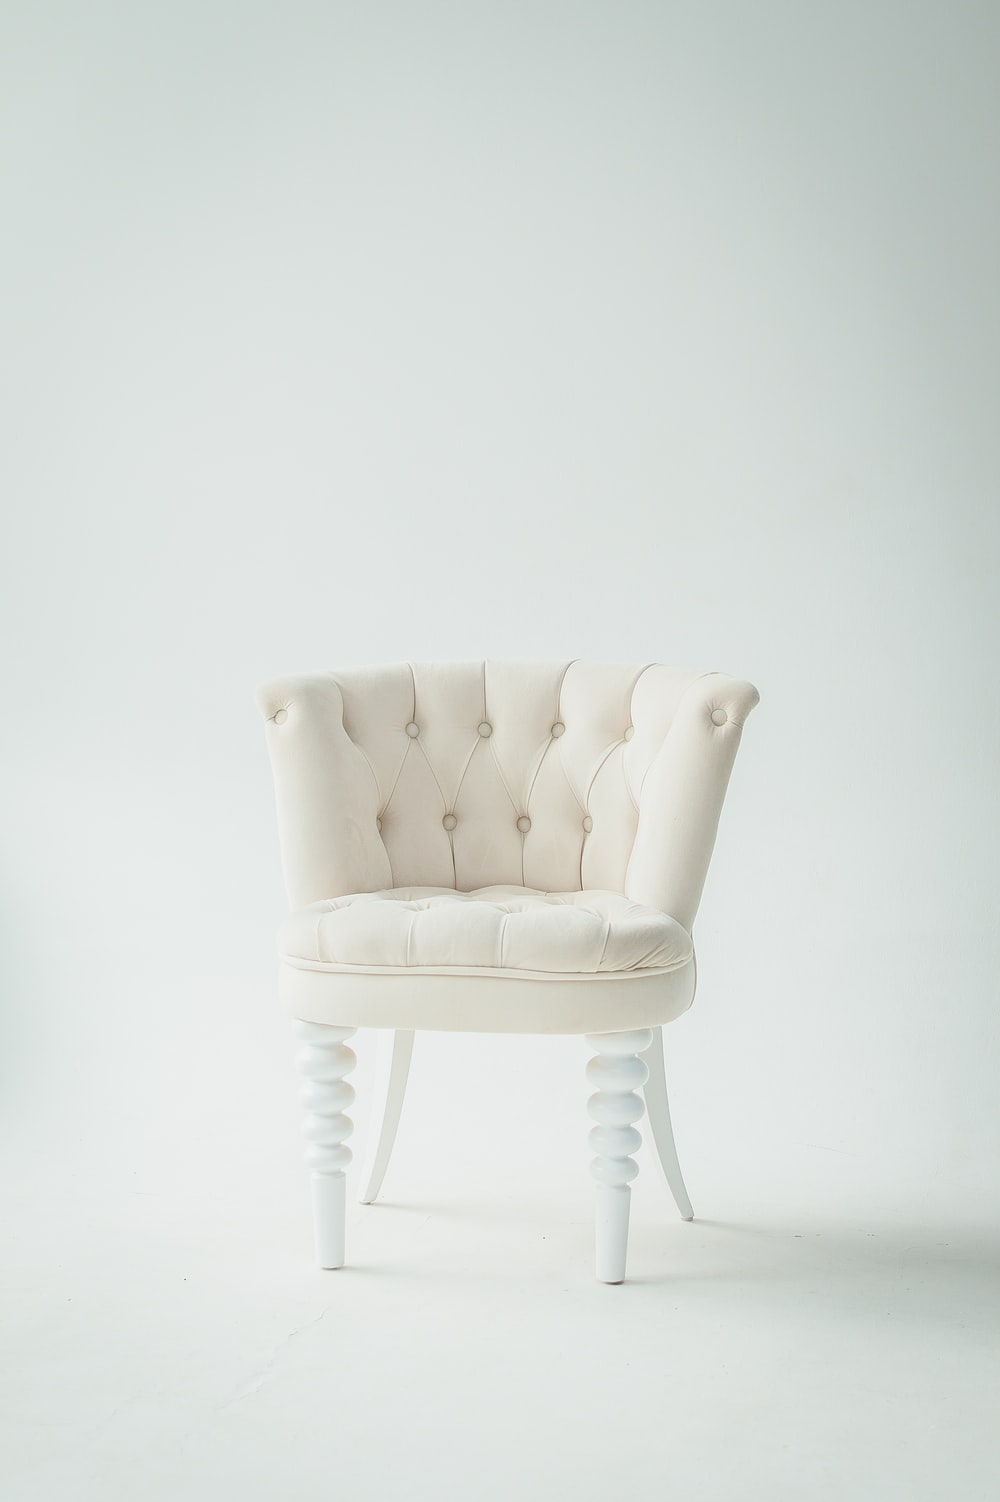 Brown And White Wooden Chairs Photo Free Furniture Image On Unsplash